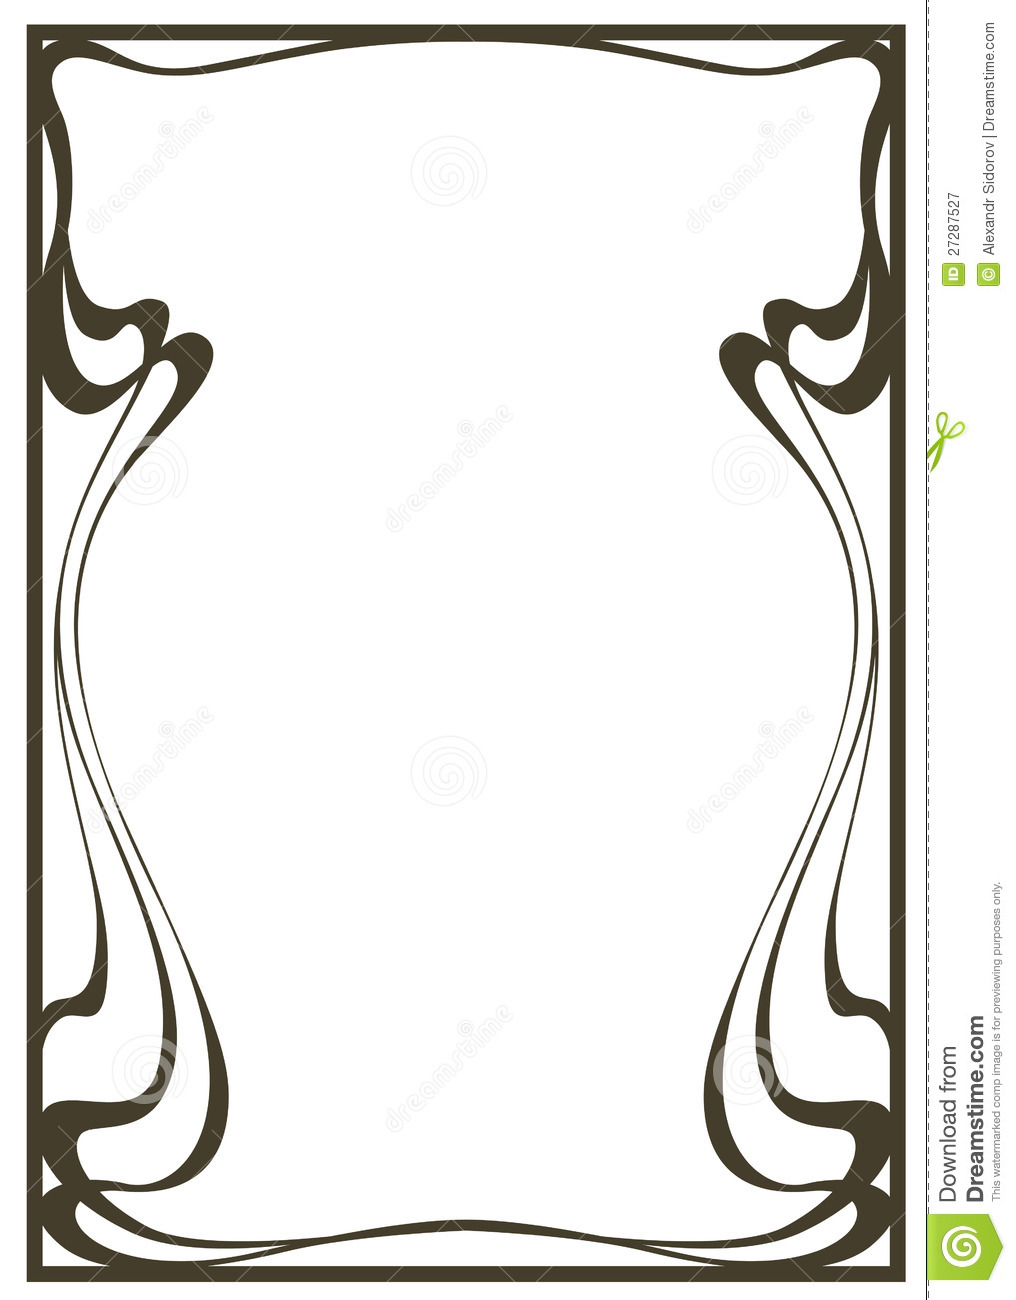 Framework In Style Art nouveau Royalty Free Stock